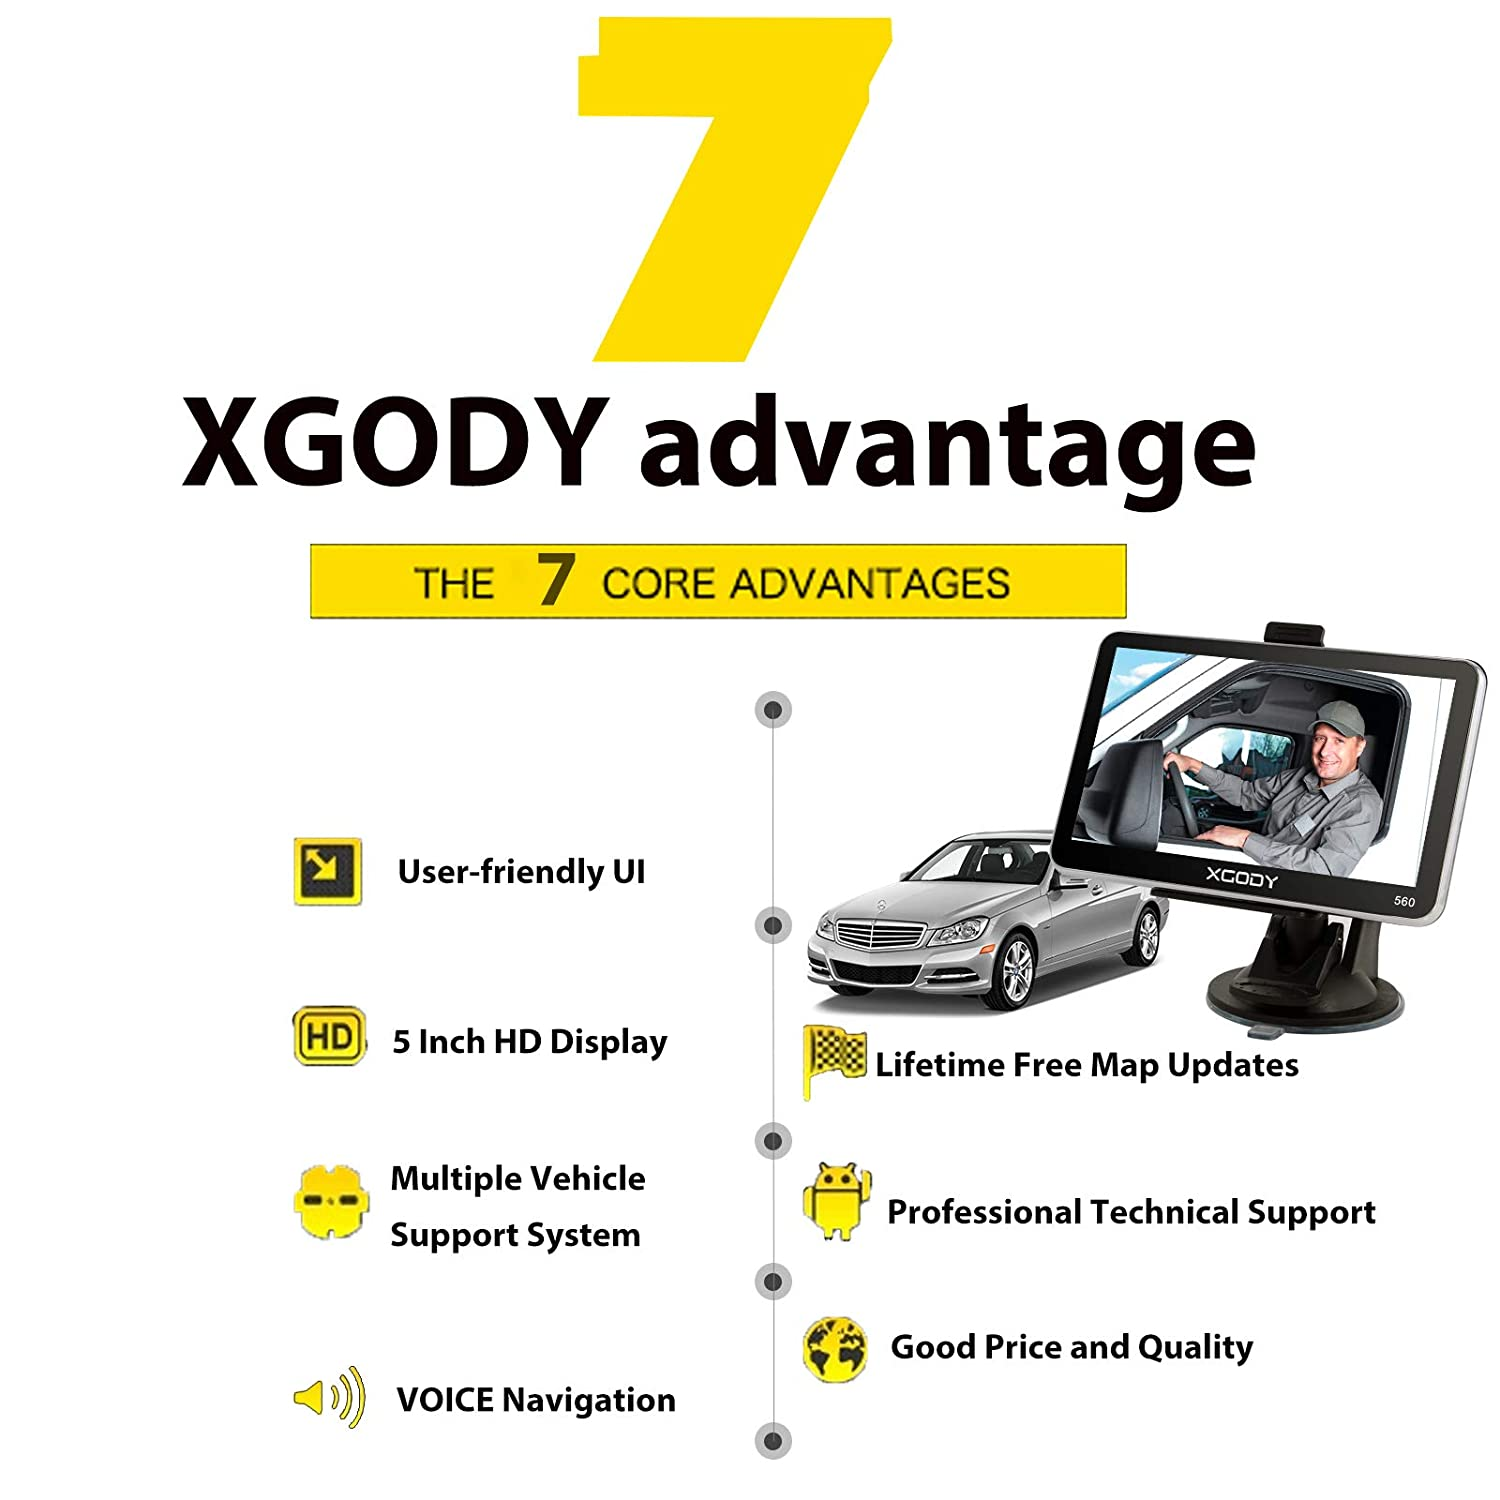 XGODY 560 SAT NAV GPS Navigation System 5 Inch 8GB 128MB Car Truck Lorry Satellite Navigator with Post Code Search Speed Camera Alerts UK and EU Latest 2018 Maps with Lifetime Free Updates